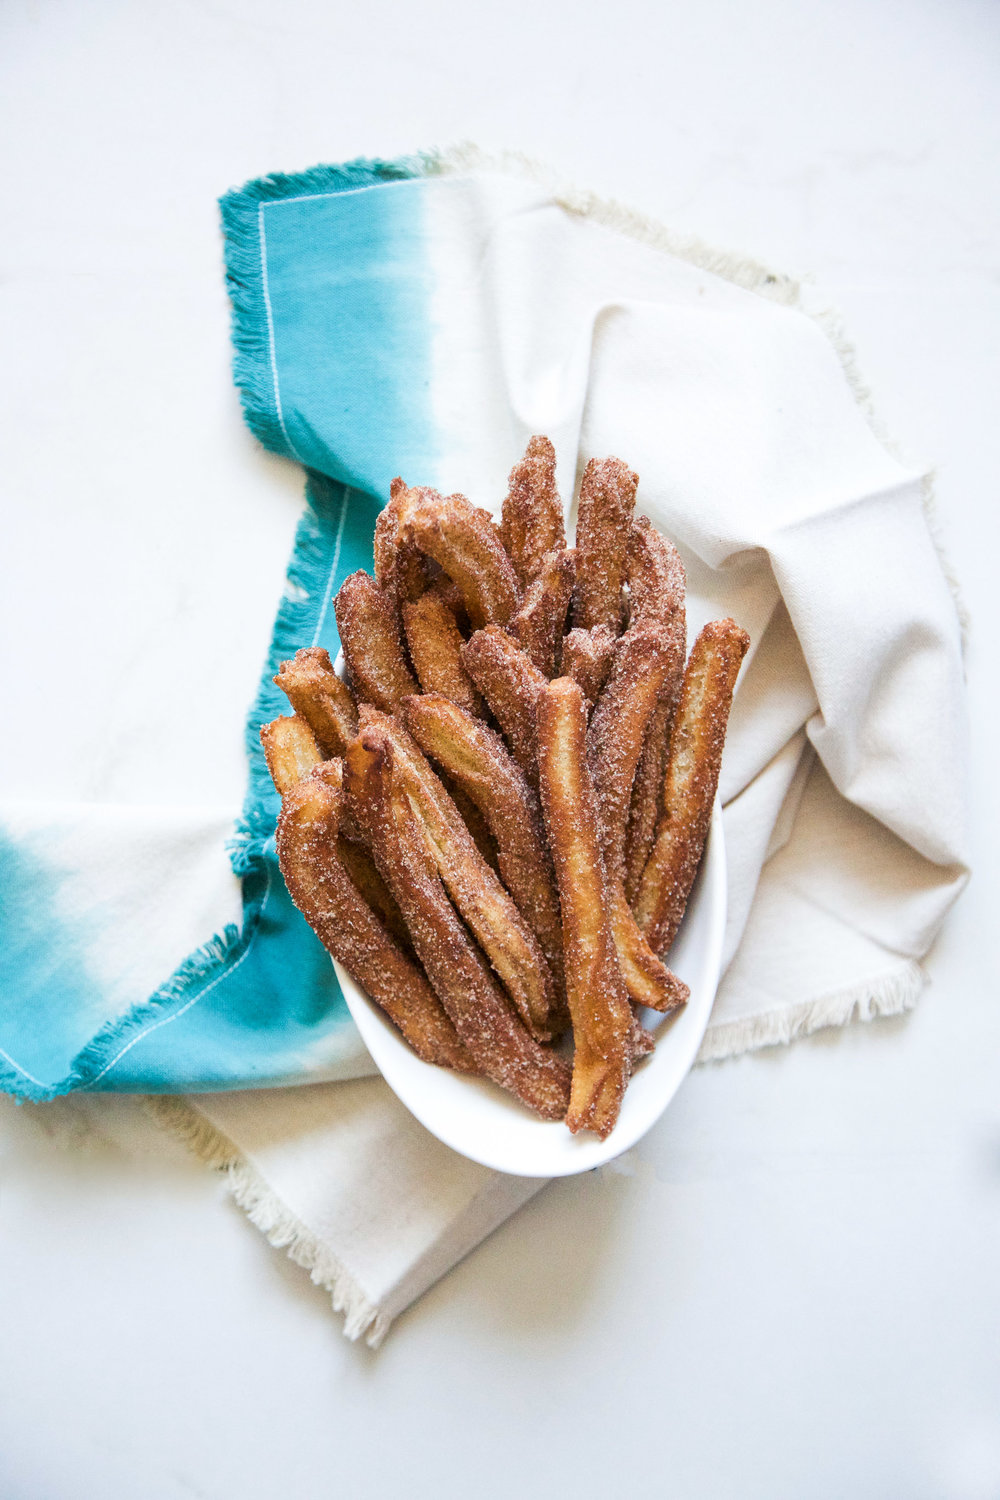 churros-with-chocolate-chili-tequila-dipping-sauce3.jpg